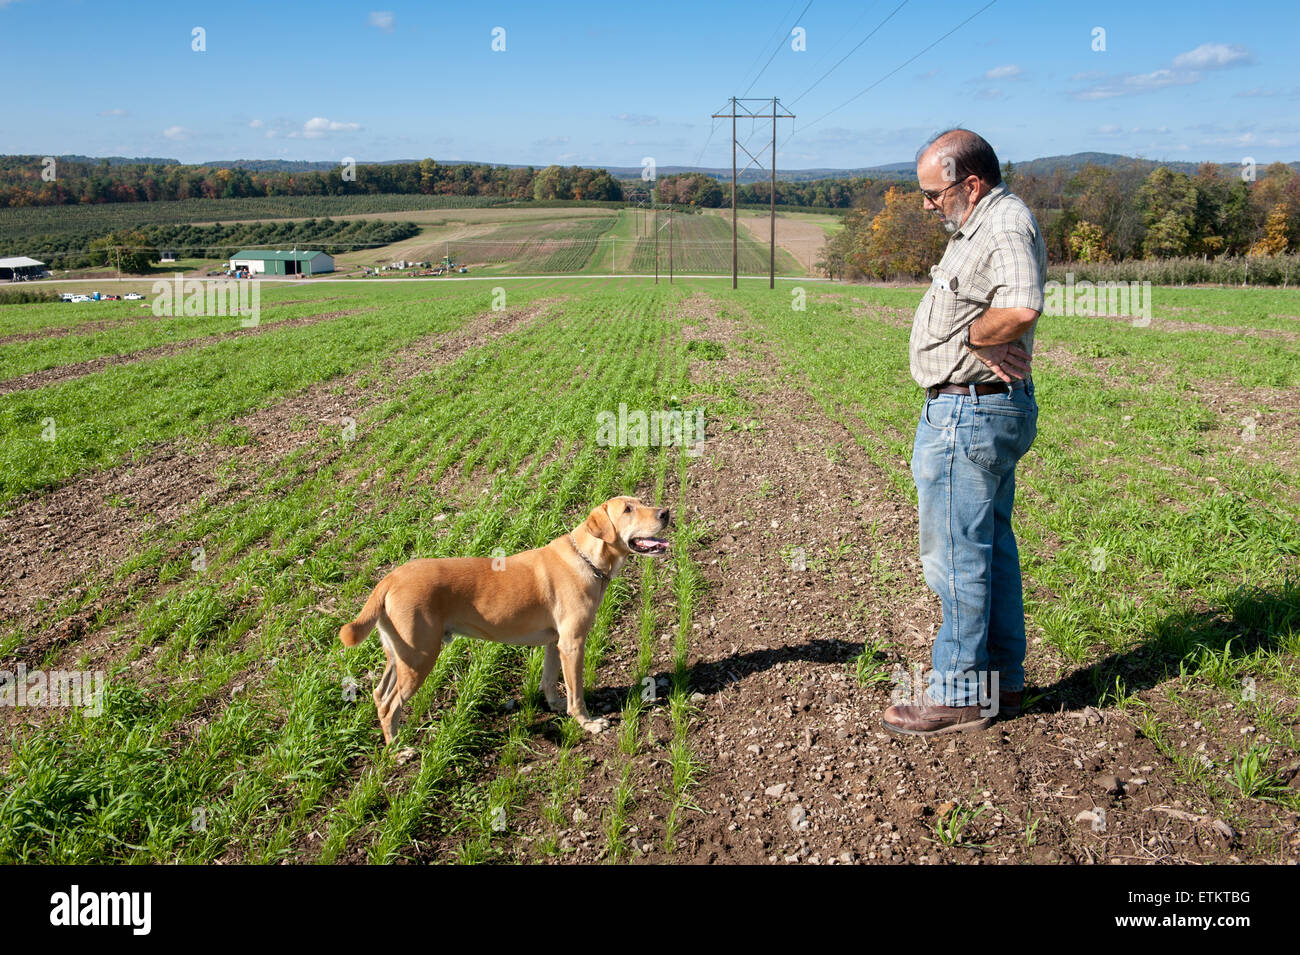 A farmer out in the field is looking at his dog, a yellow lab, in Aspers, Pennsylvania, USA - Stock Image